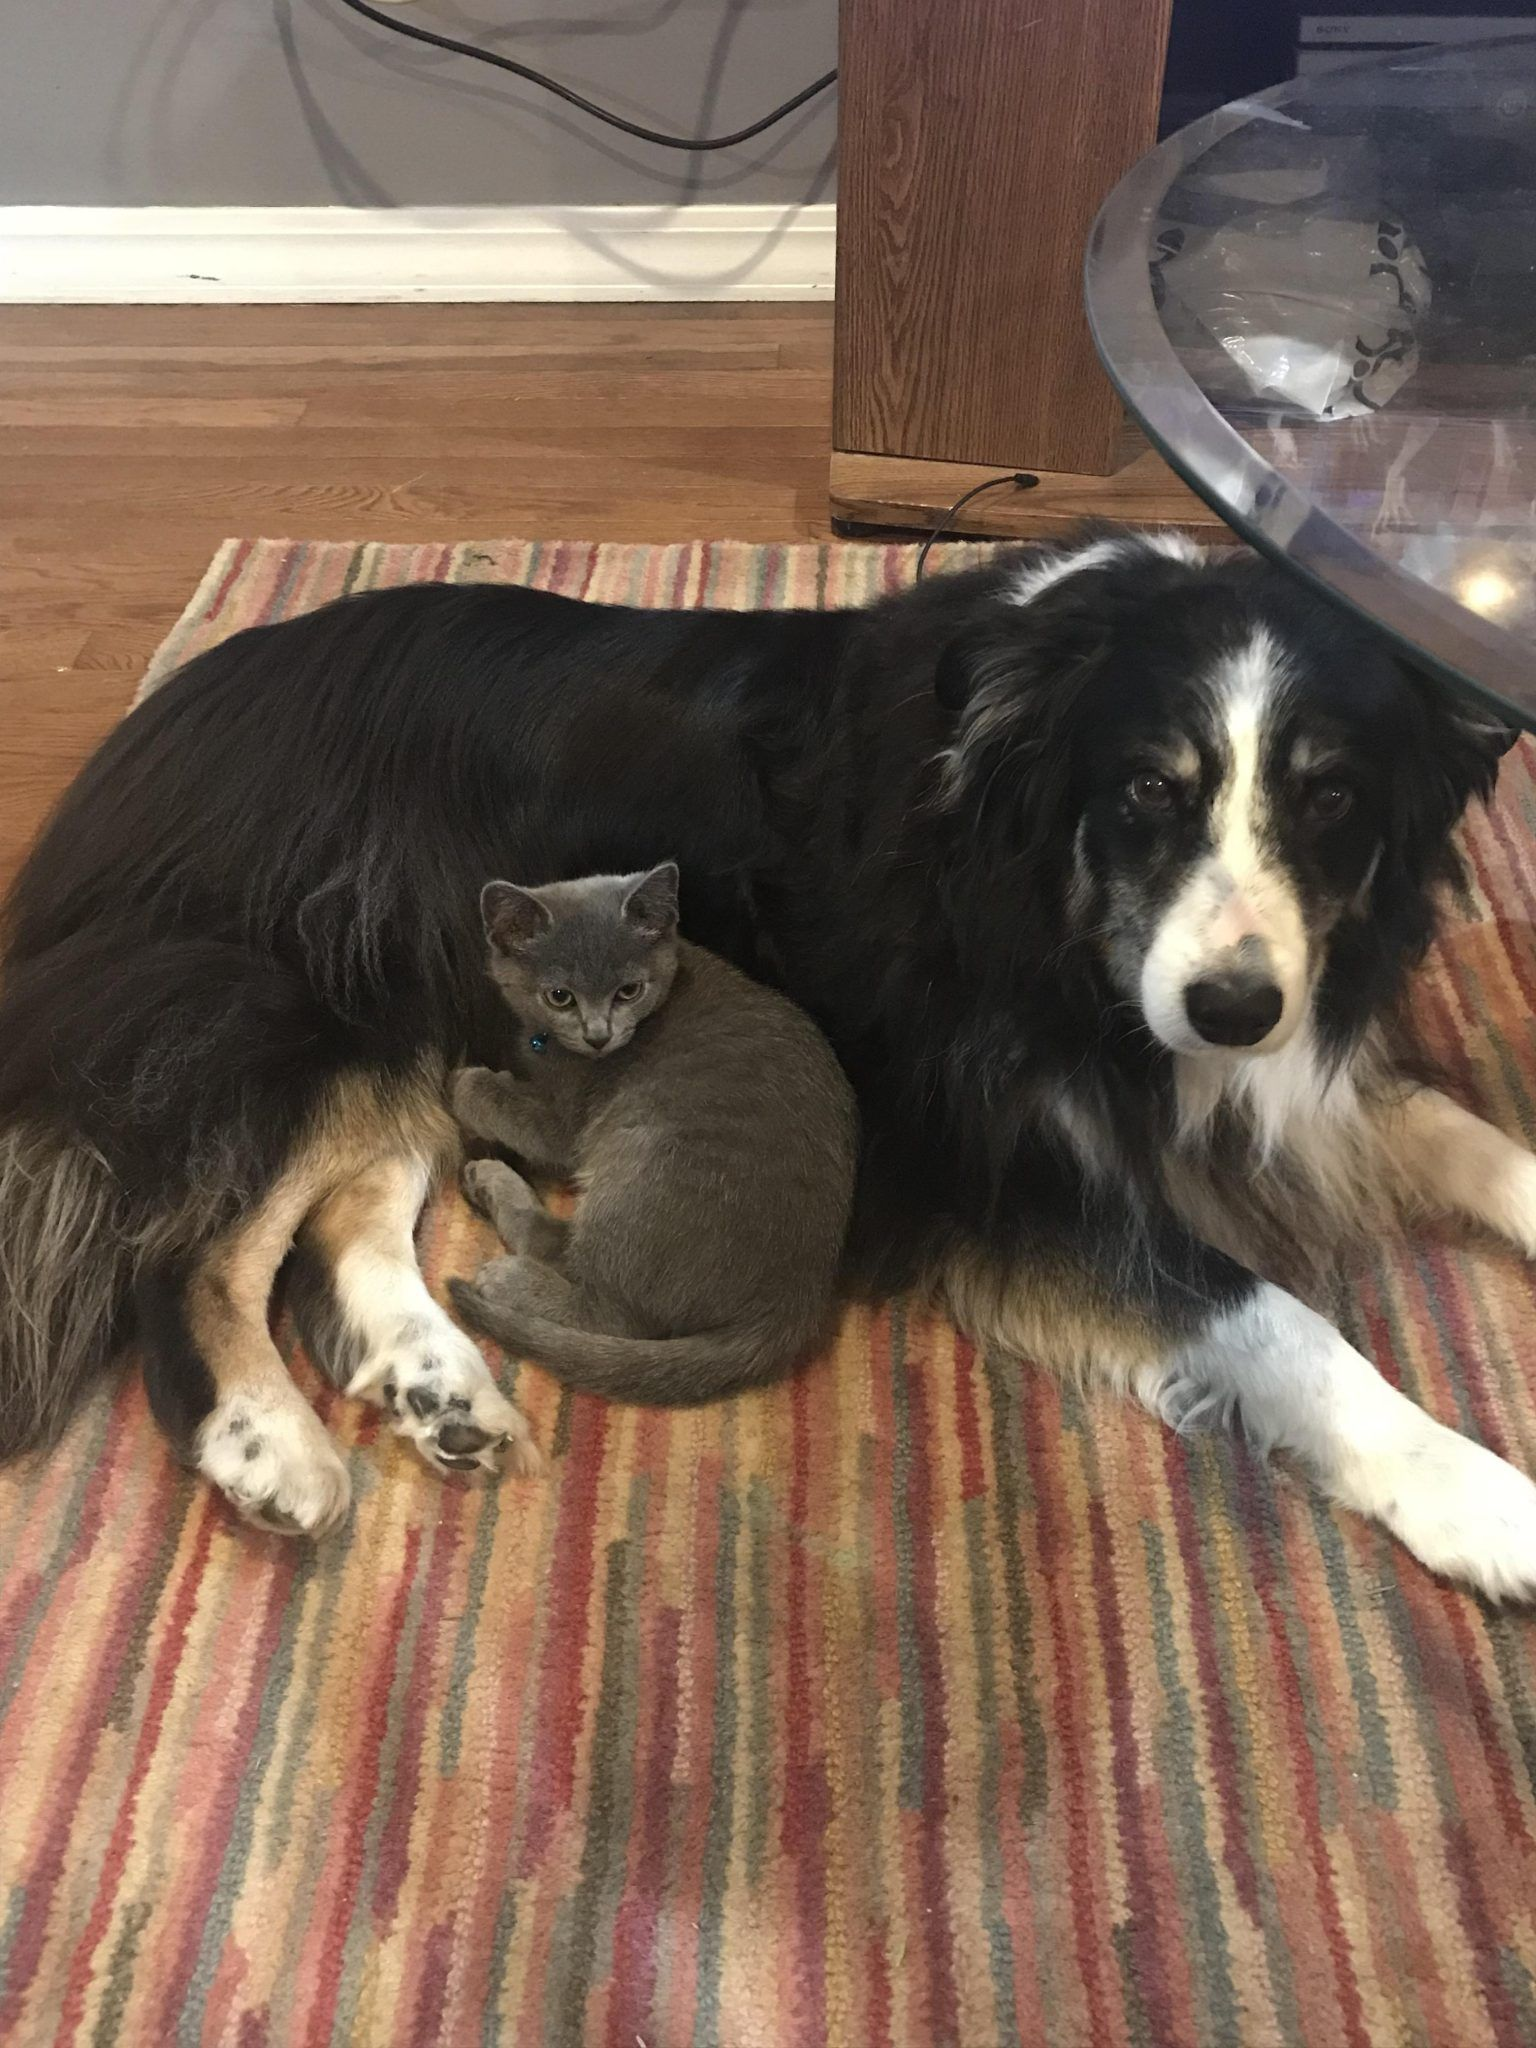 We were worried our new kitten wouldn't get along with our older dog ...